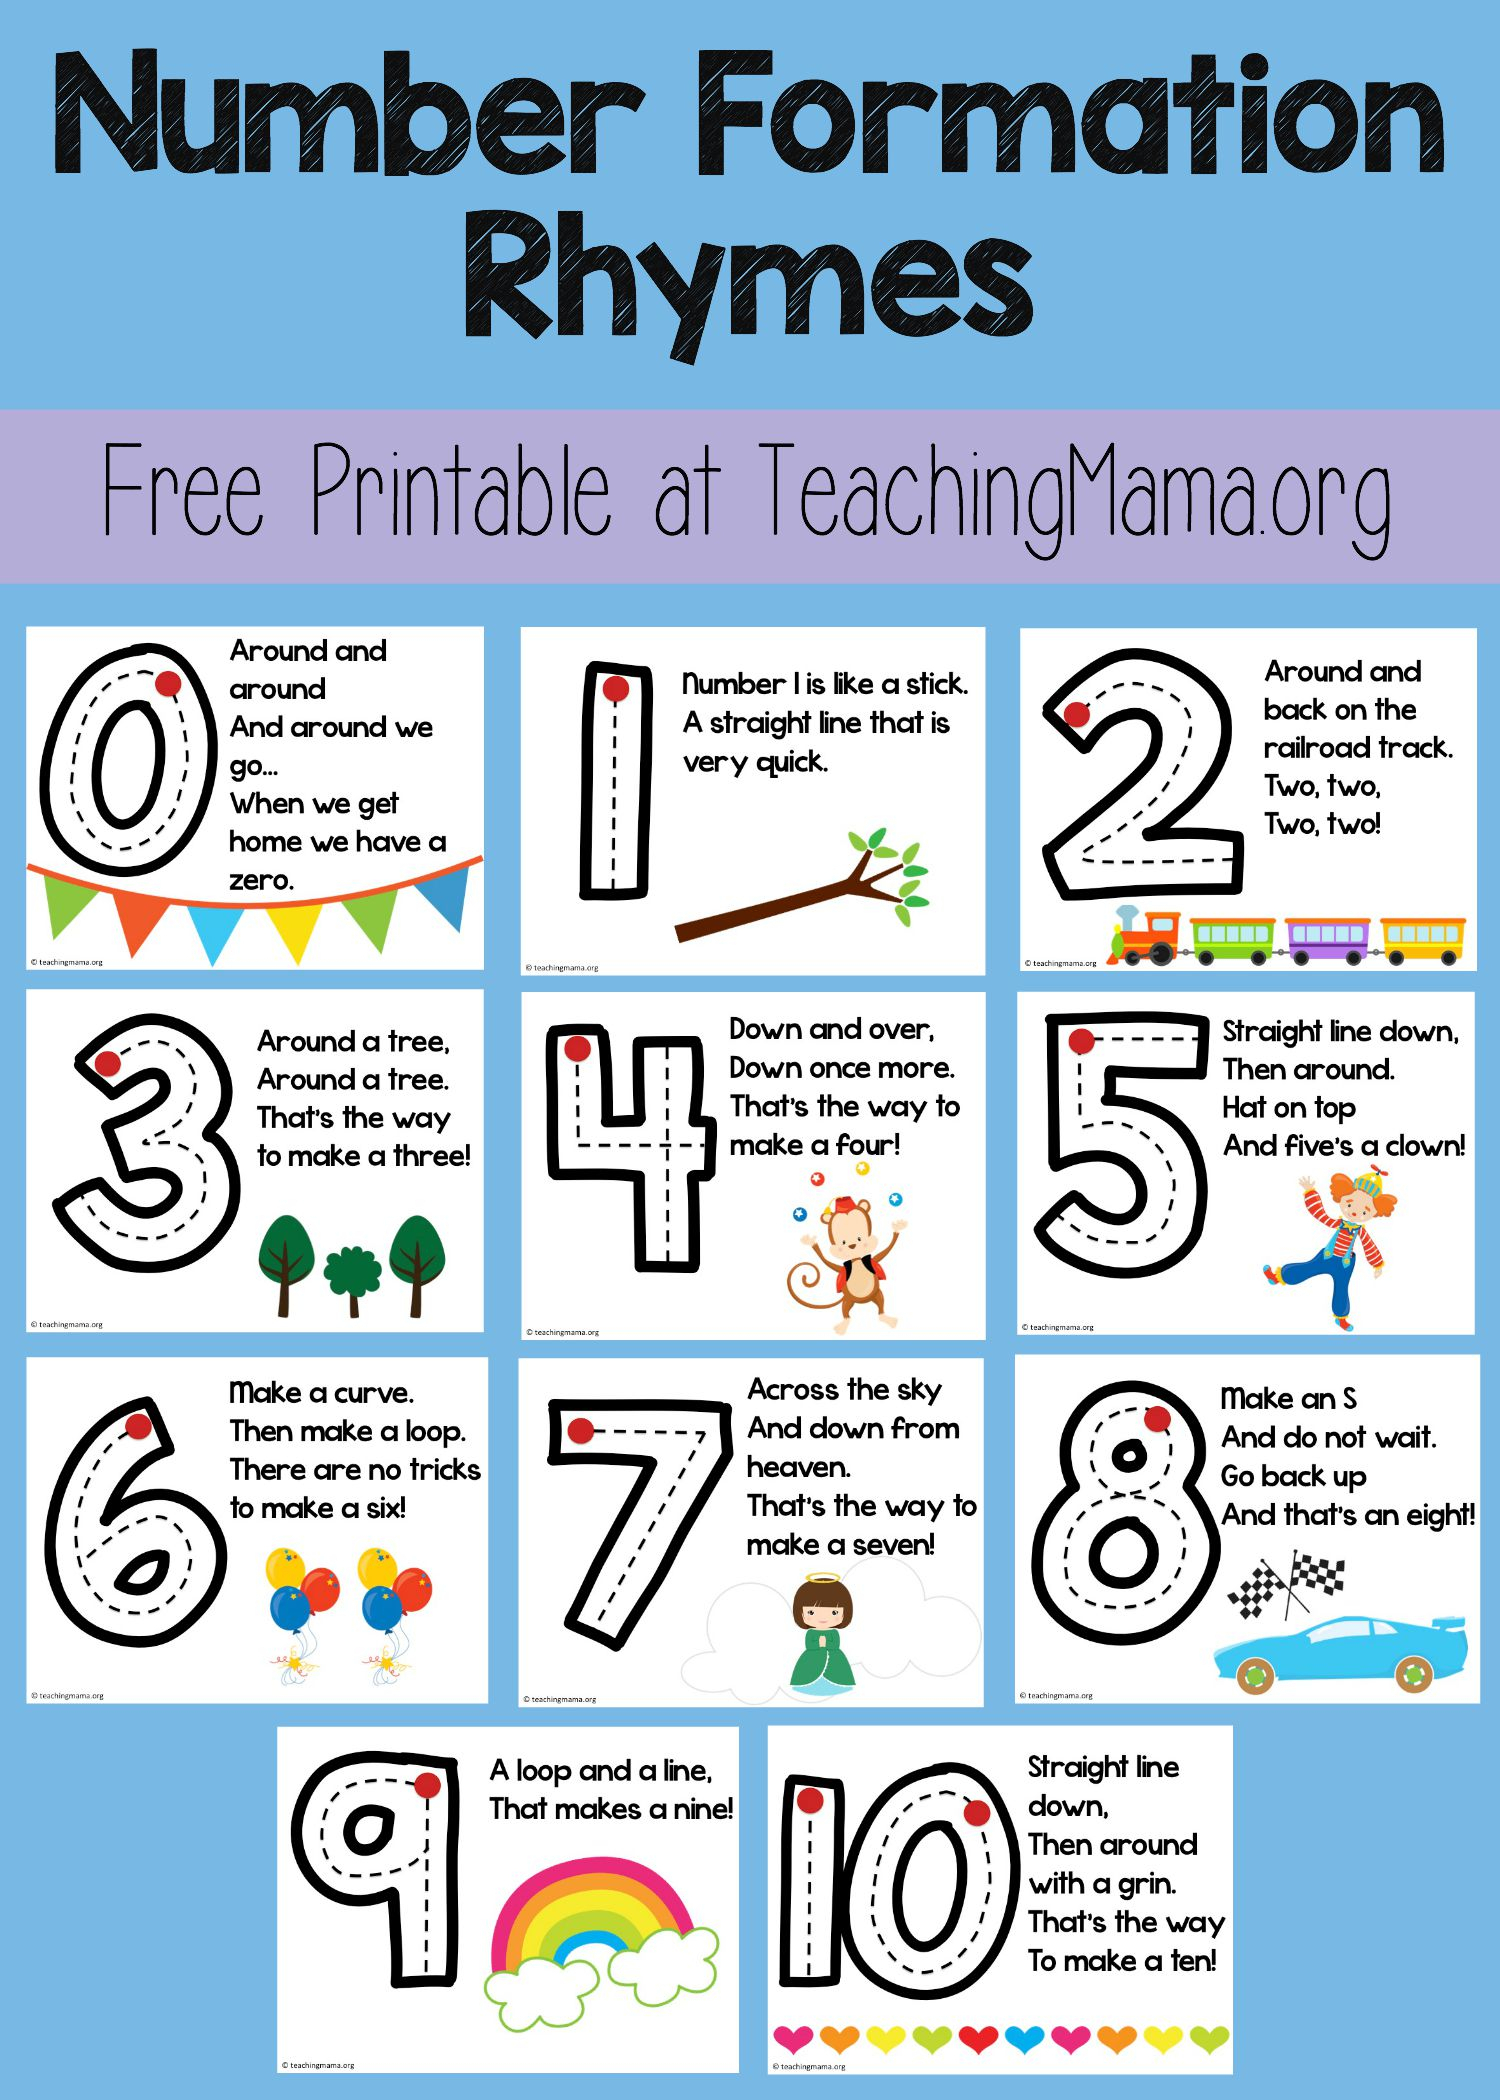 Number Formation Rhymes - Teaching Mama intended for Alphabet Tracing Rhymes